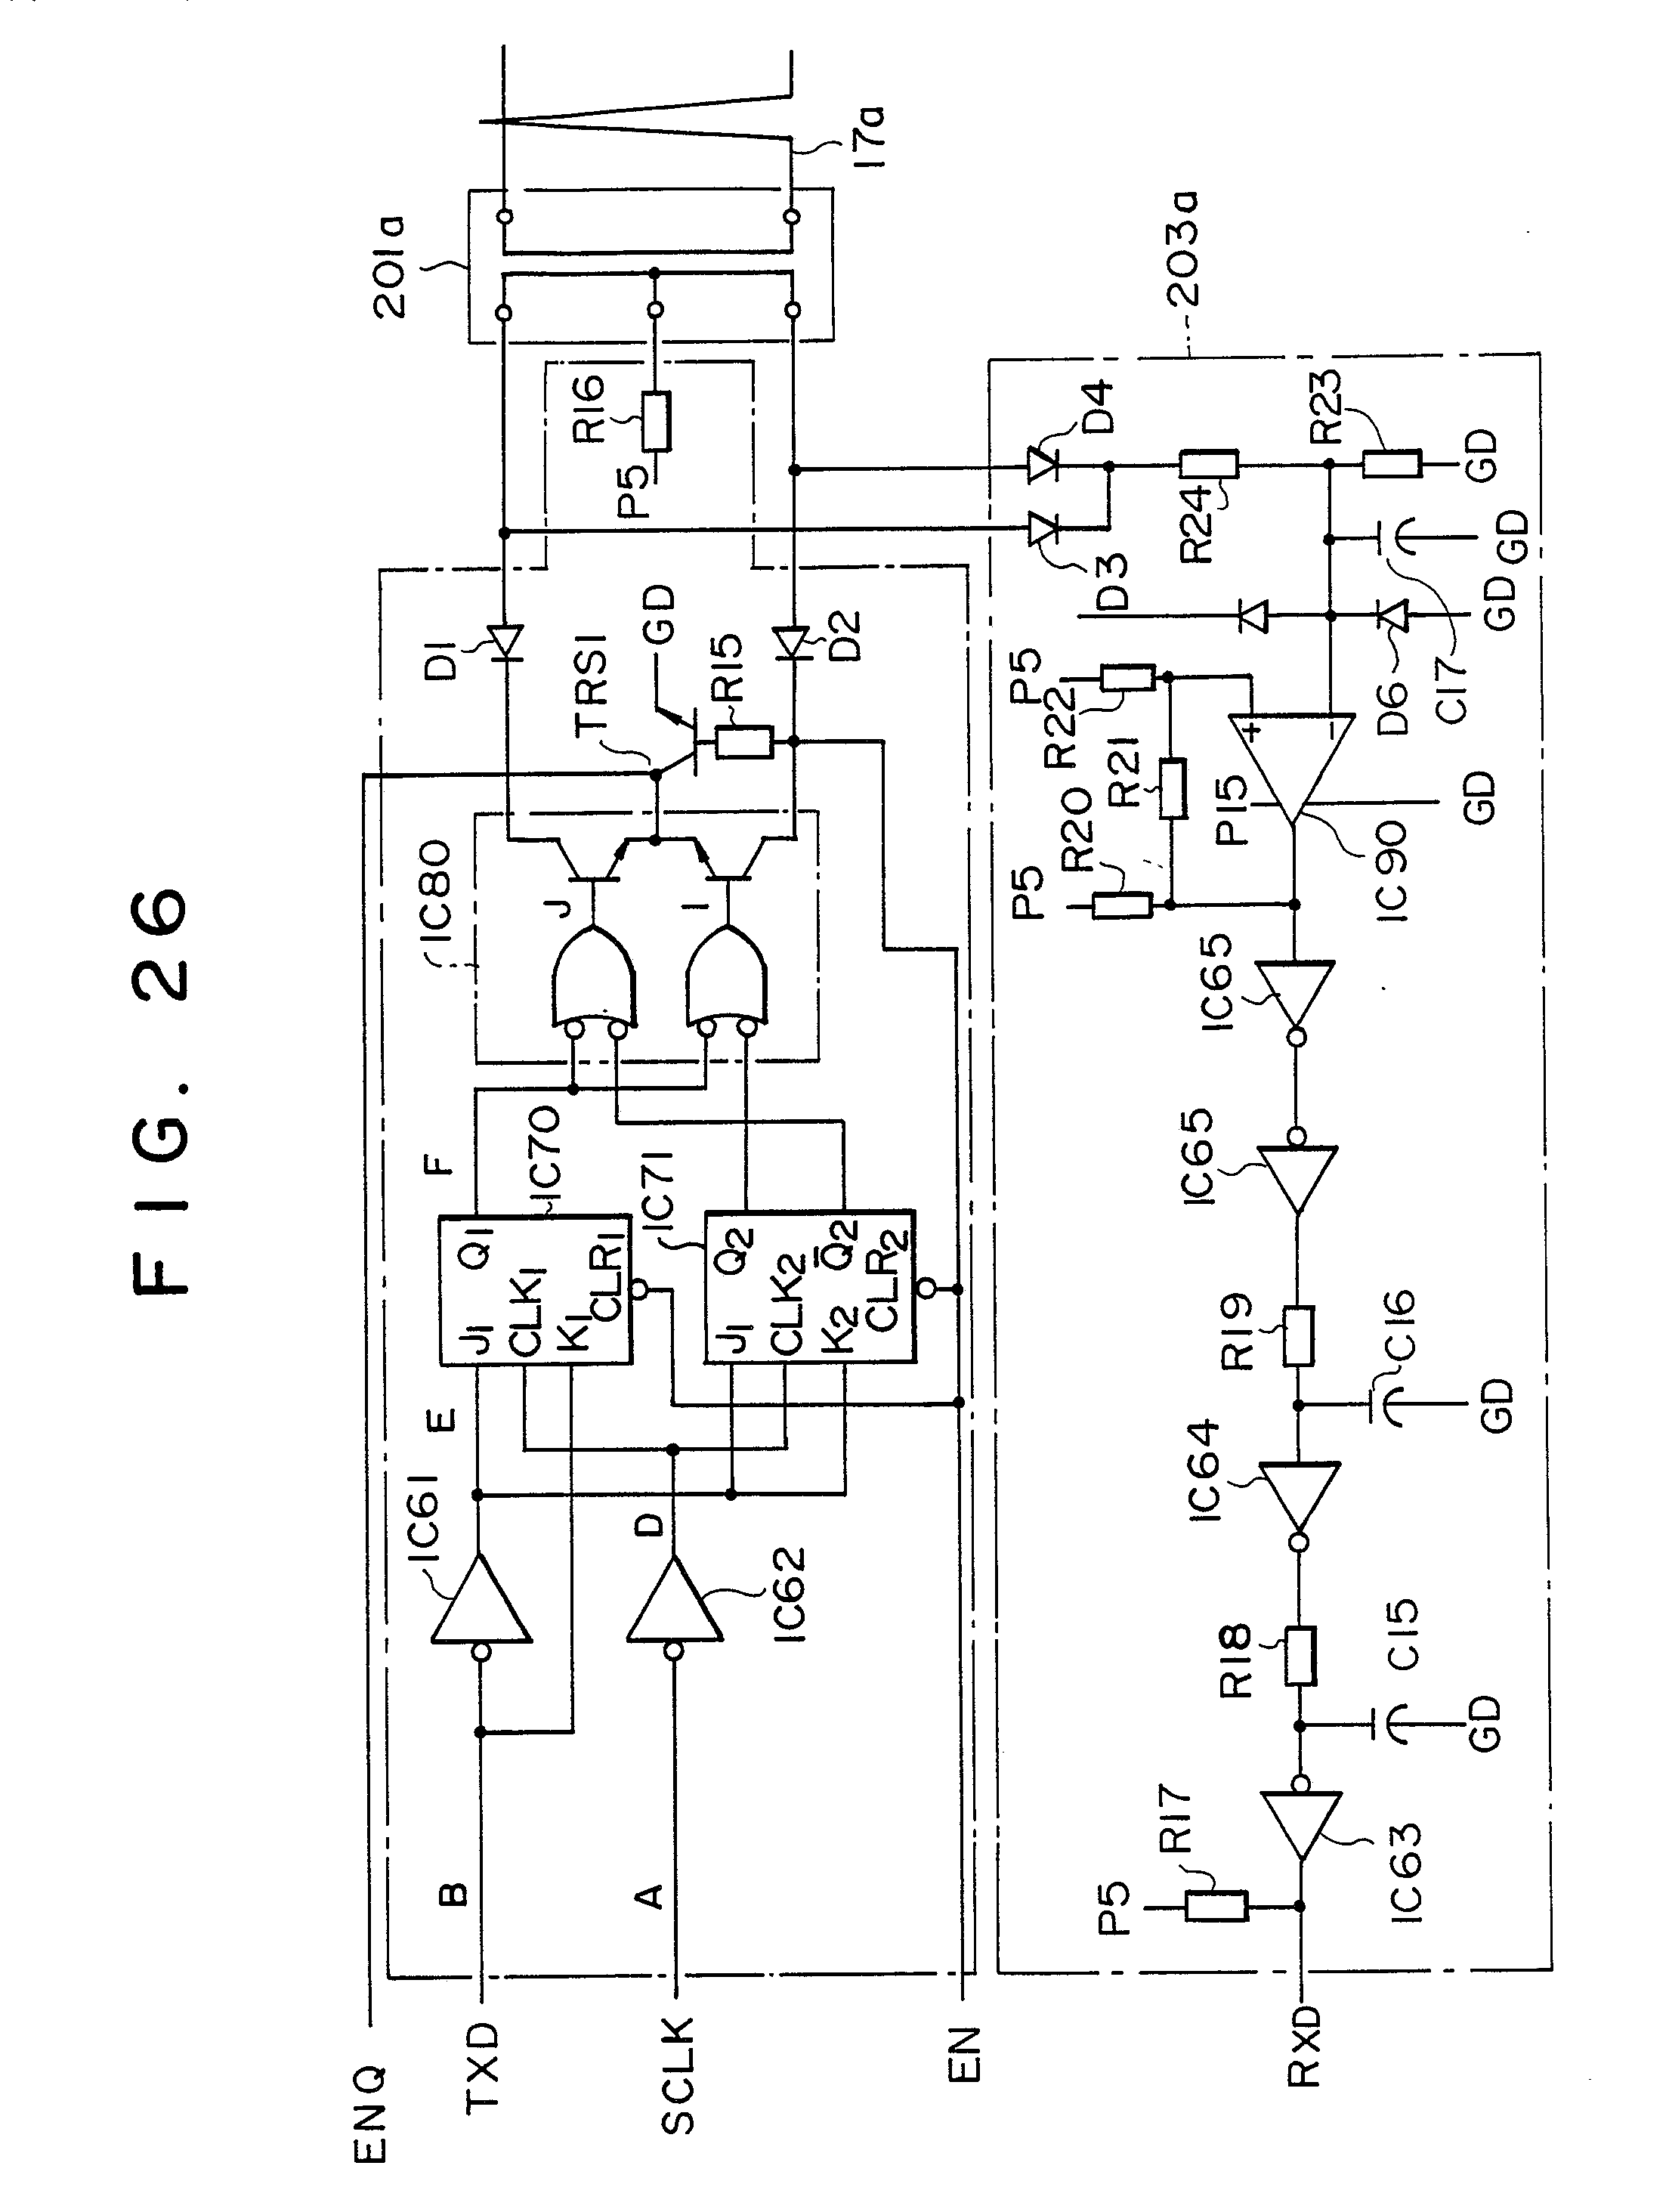 imgf0029 patent ep0335412a1 elevator control system google patents  at bayanpartner.co